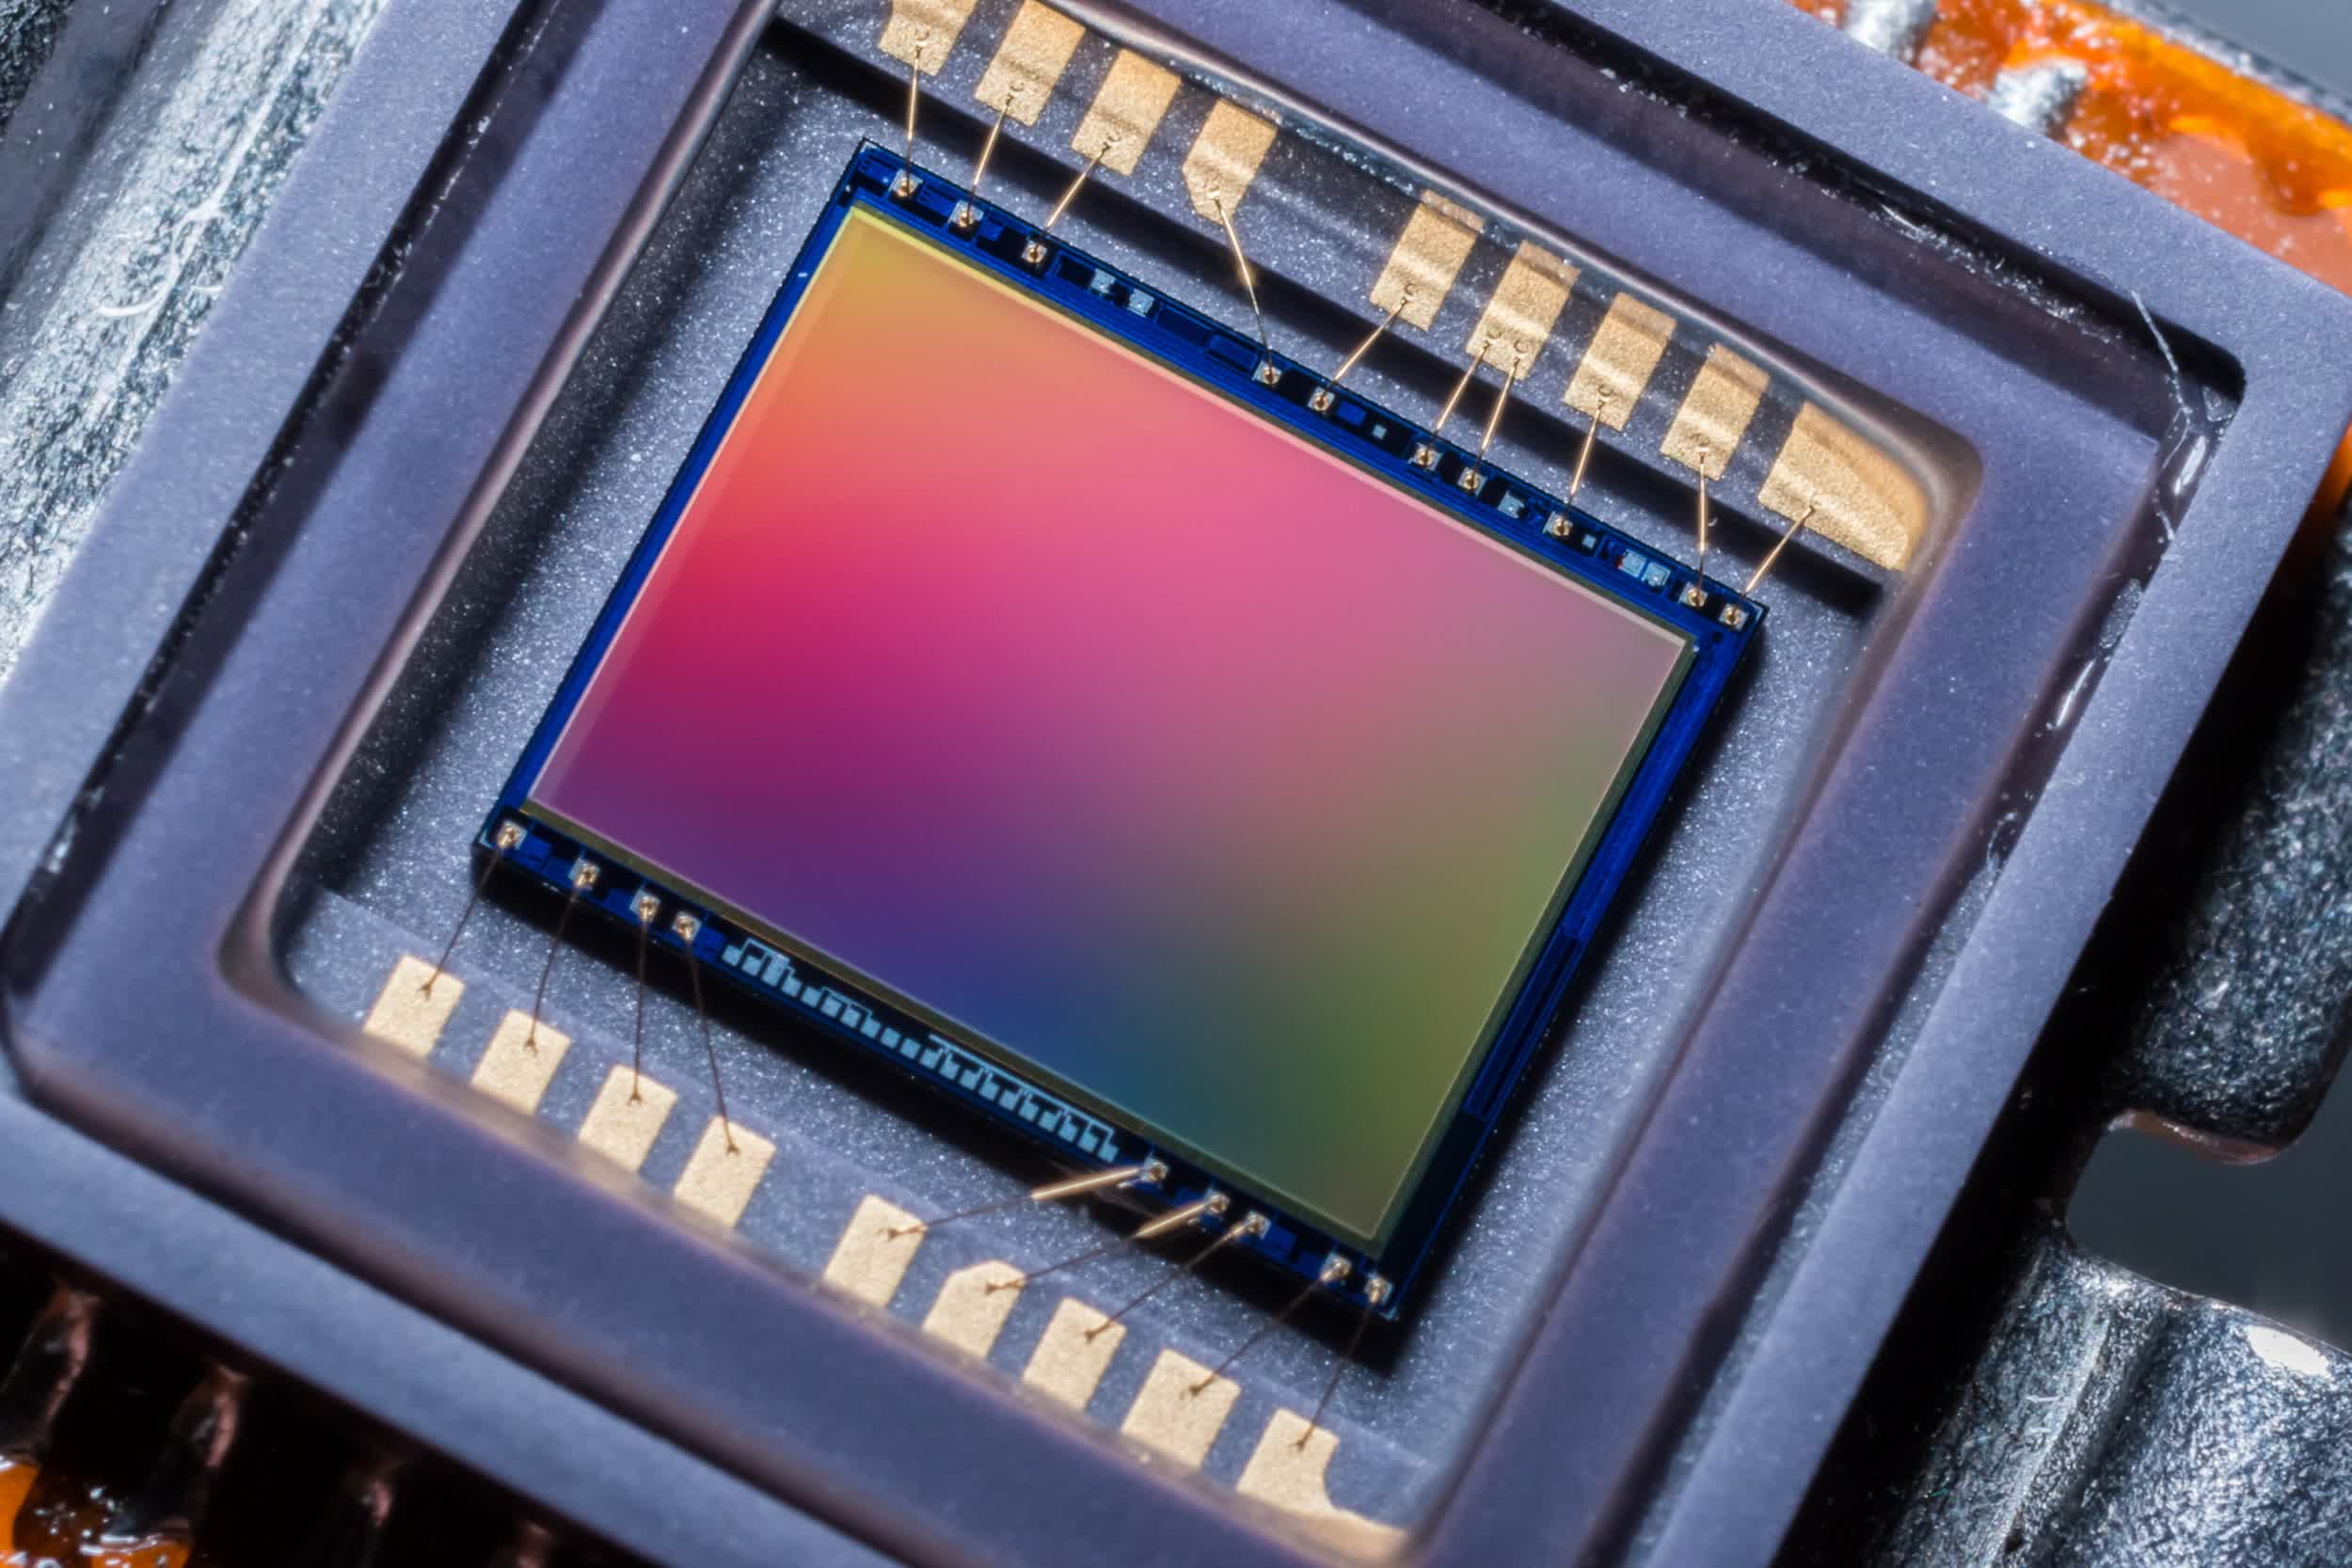 Samsung made a new 50-megapixel image sensor with the smallest pixels yet